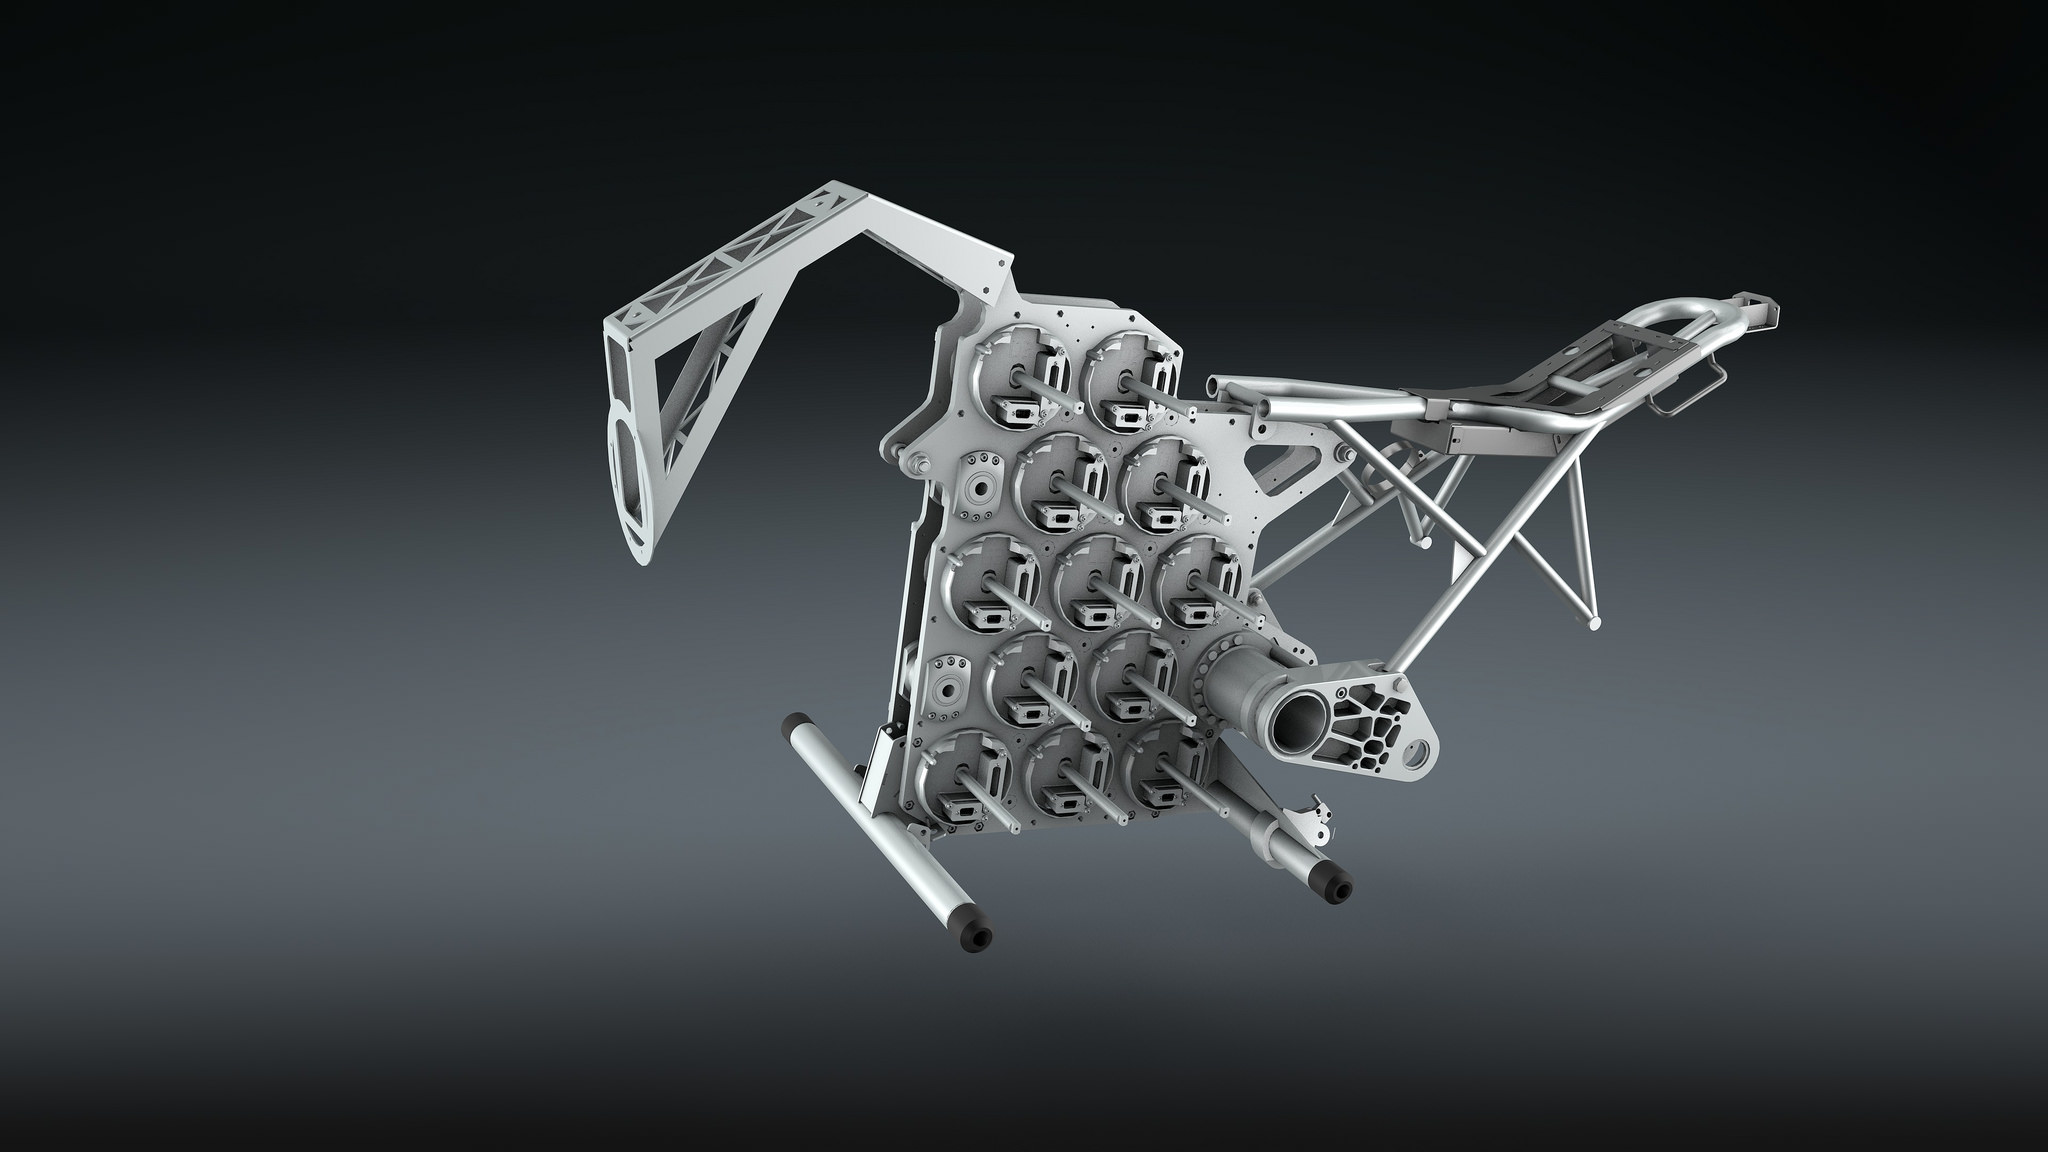 The aluminum mainframe for housing the battery pack of the STORM motorcycle. (Image: STORM Eindhoven.)